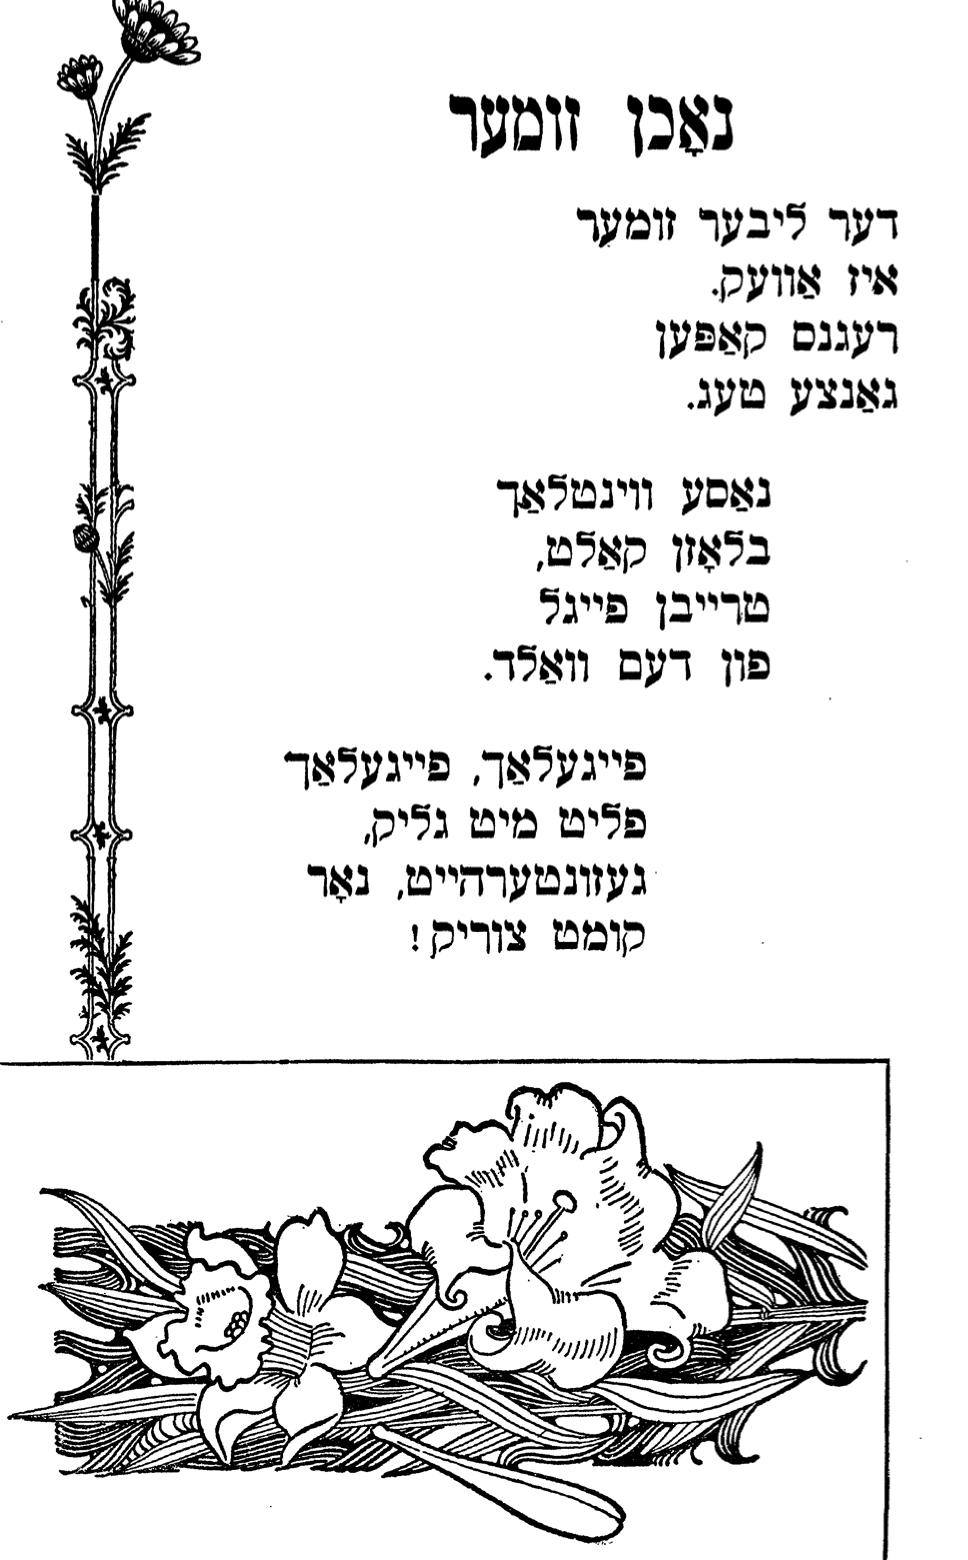 """<p>A poem, <span class=""""push-double""""></span><span class=""""pull-double"""">""""</span>Nokhn zumer"""" from <em>Idish far onfanger </em>by Baruch Ostrovsky (<span class=""""numbers"""">1927</span>)</p>"""